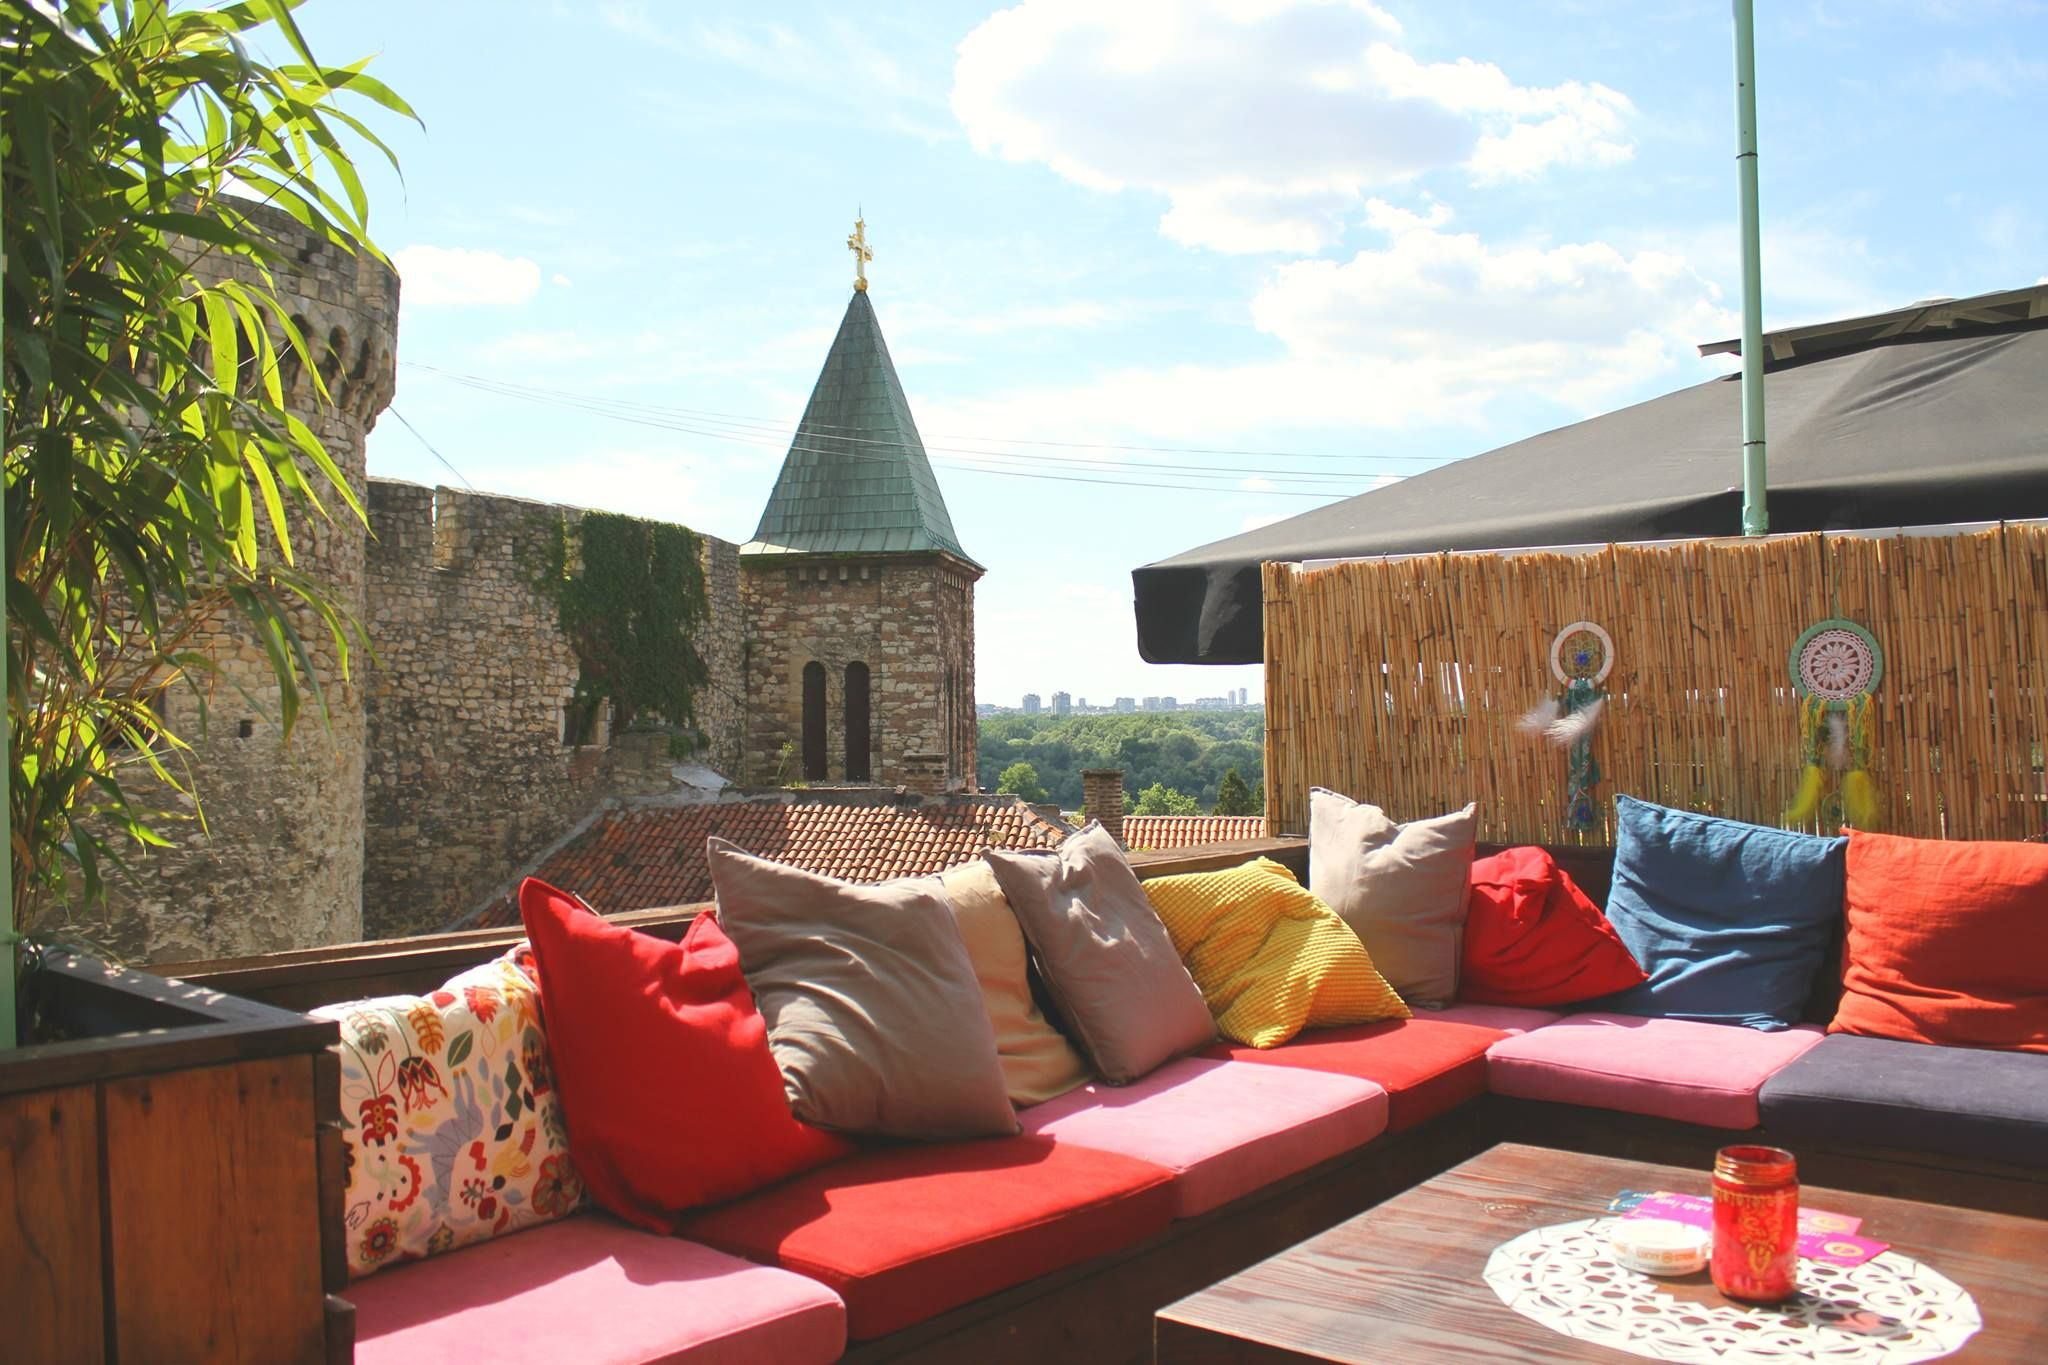 Boho Bar Is Belgrade S New Summer Hotspot Located In The Middle Of The Kalemegdan Fortress The City S Most Famous Attrac Belgrade Fortress Boho Bar White City